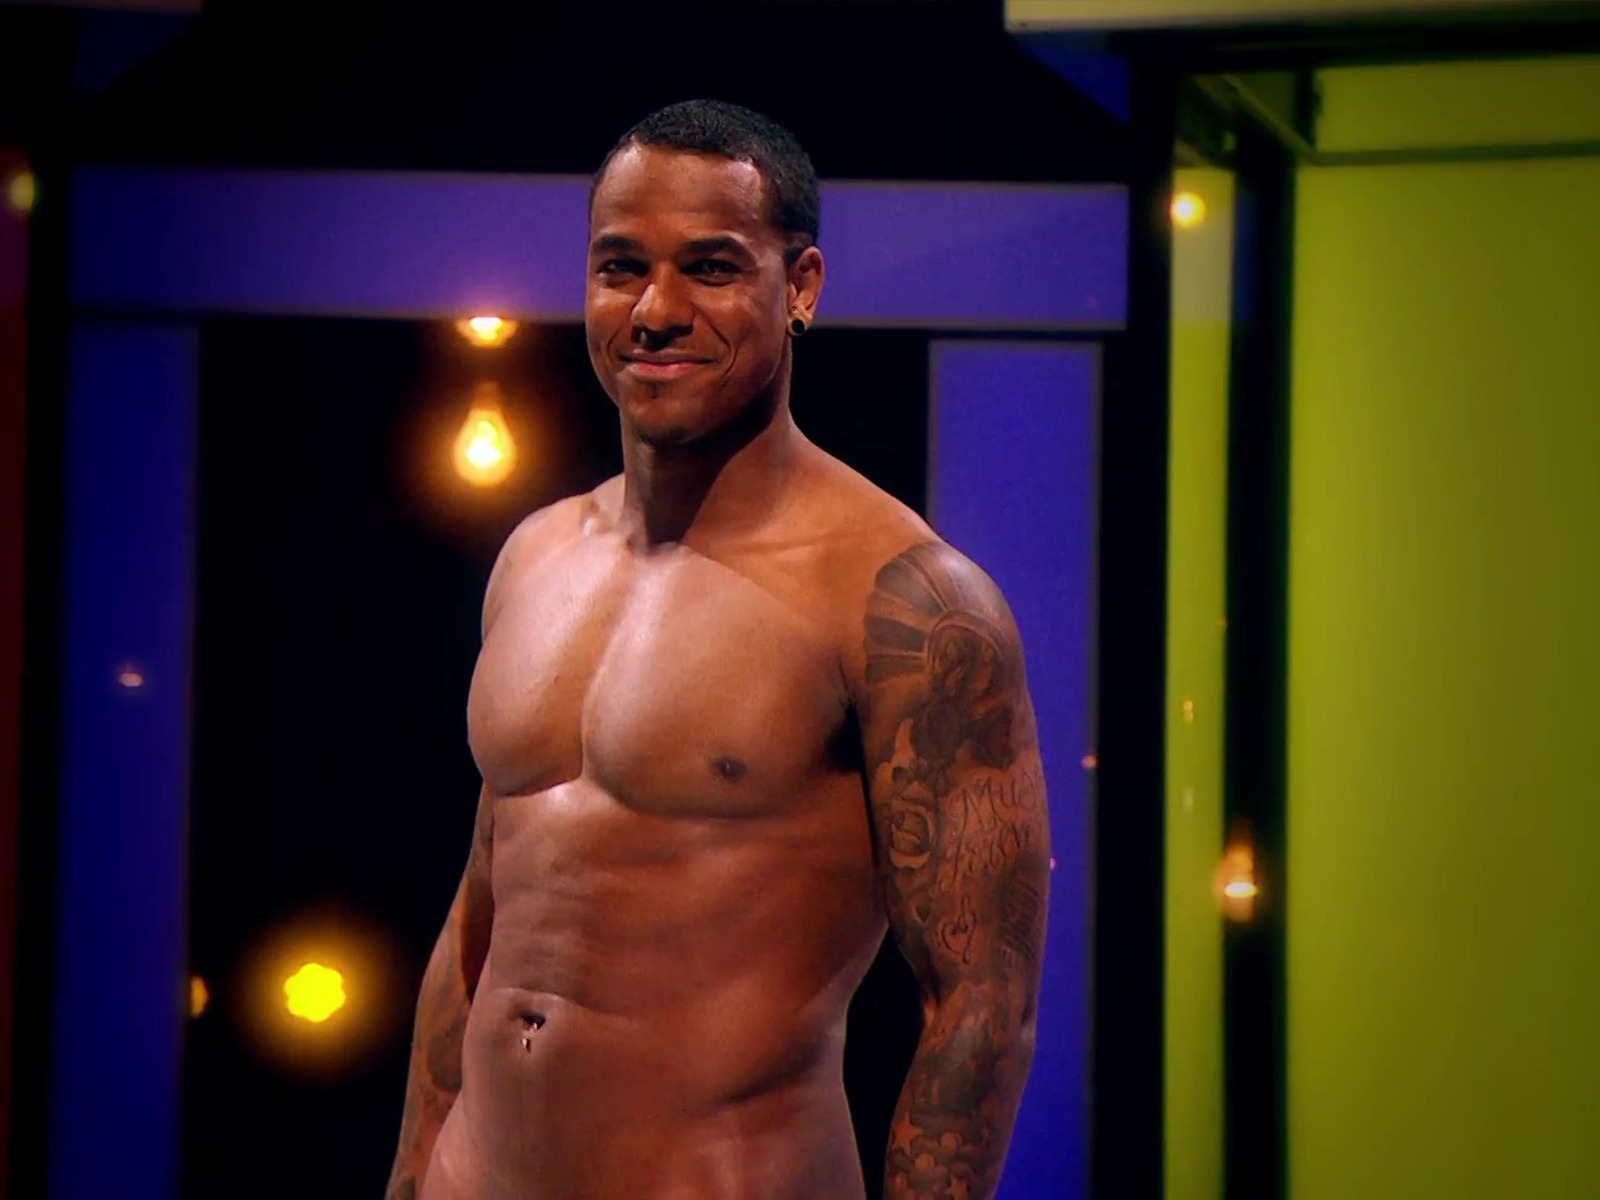 Naked Attraction really works as both contestants find